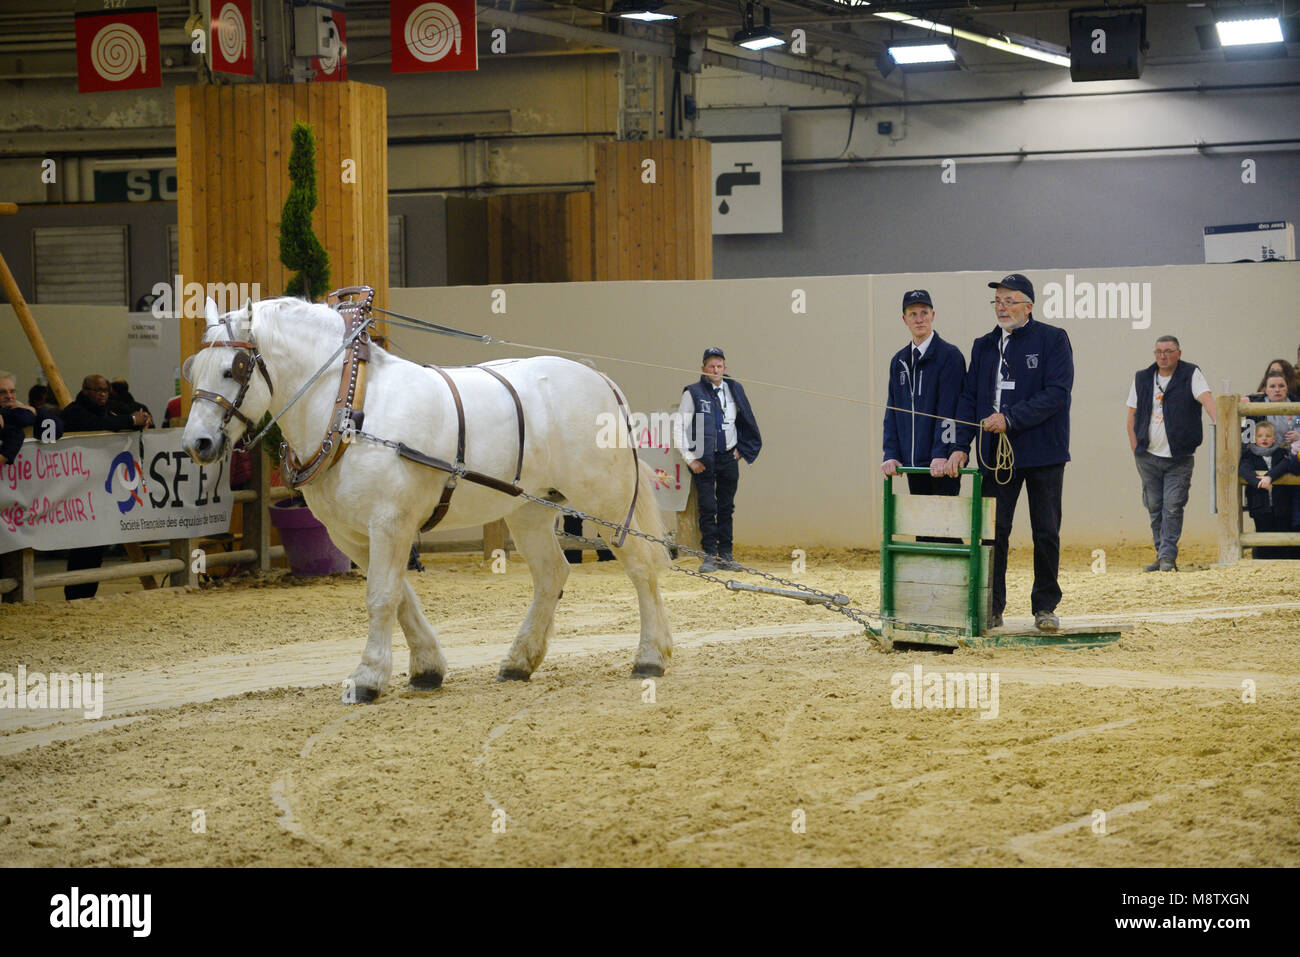 Exhibition or Demonstration of a Boulonnais Draft Horse Pulling Sledge at the Paris International Agricultural Show - Stock Image